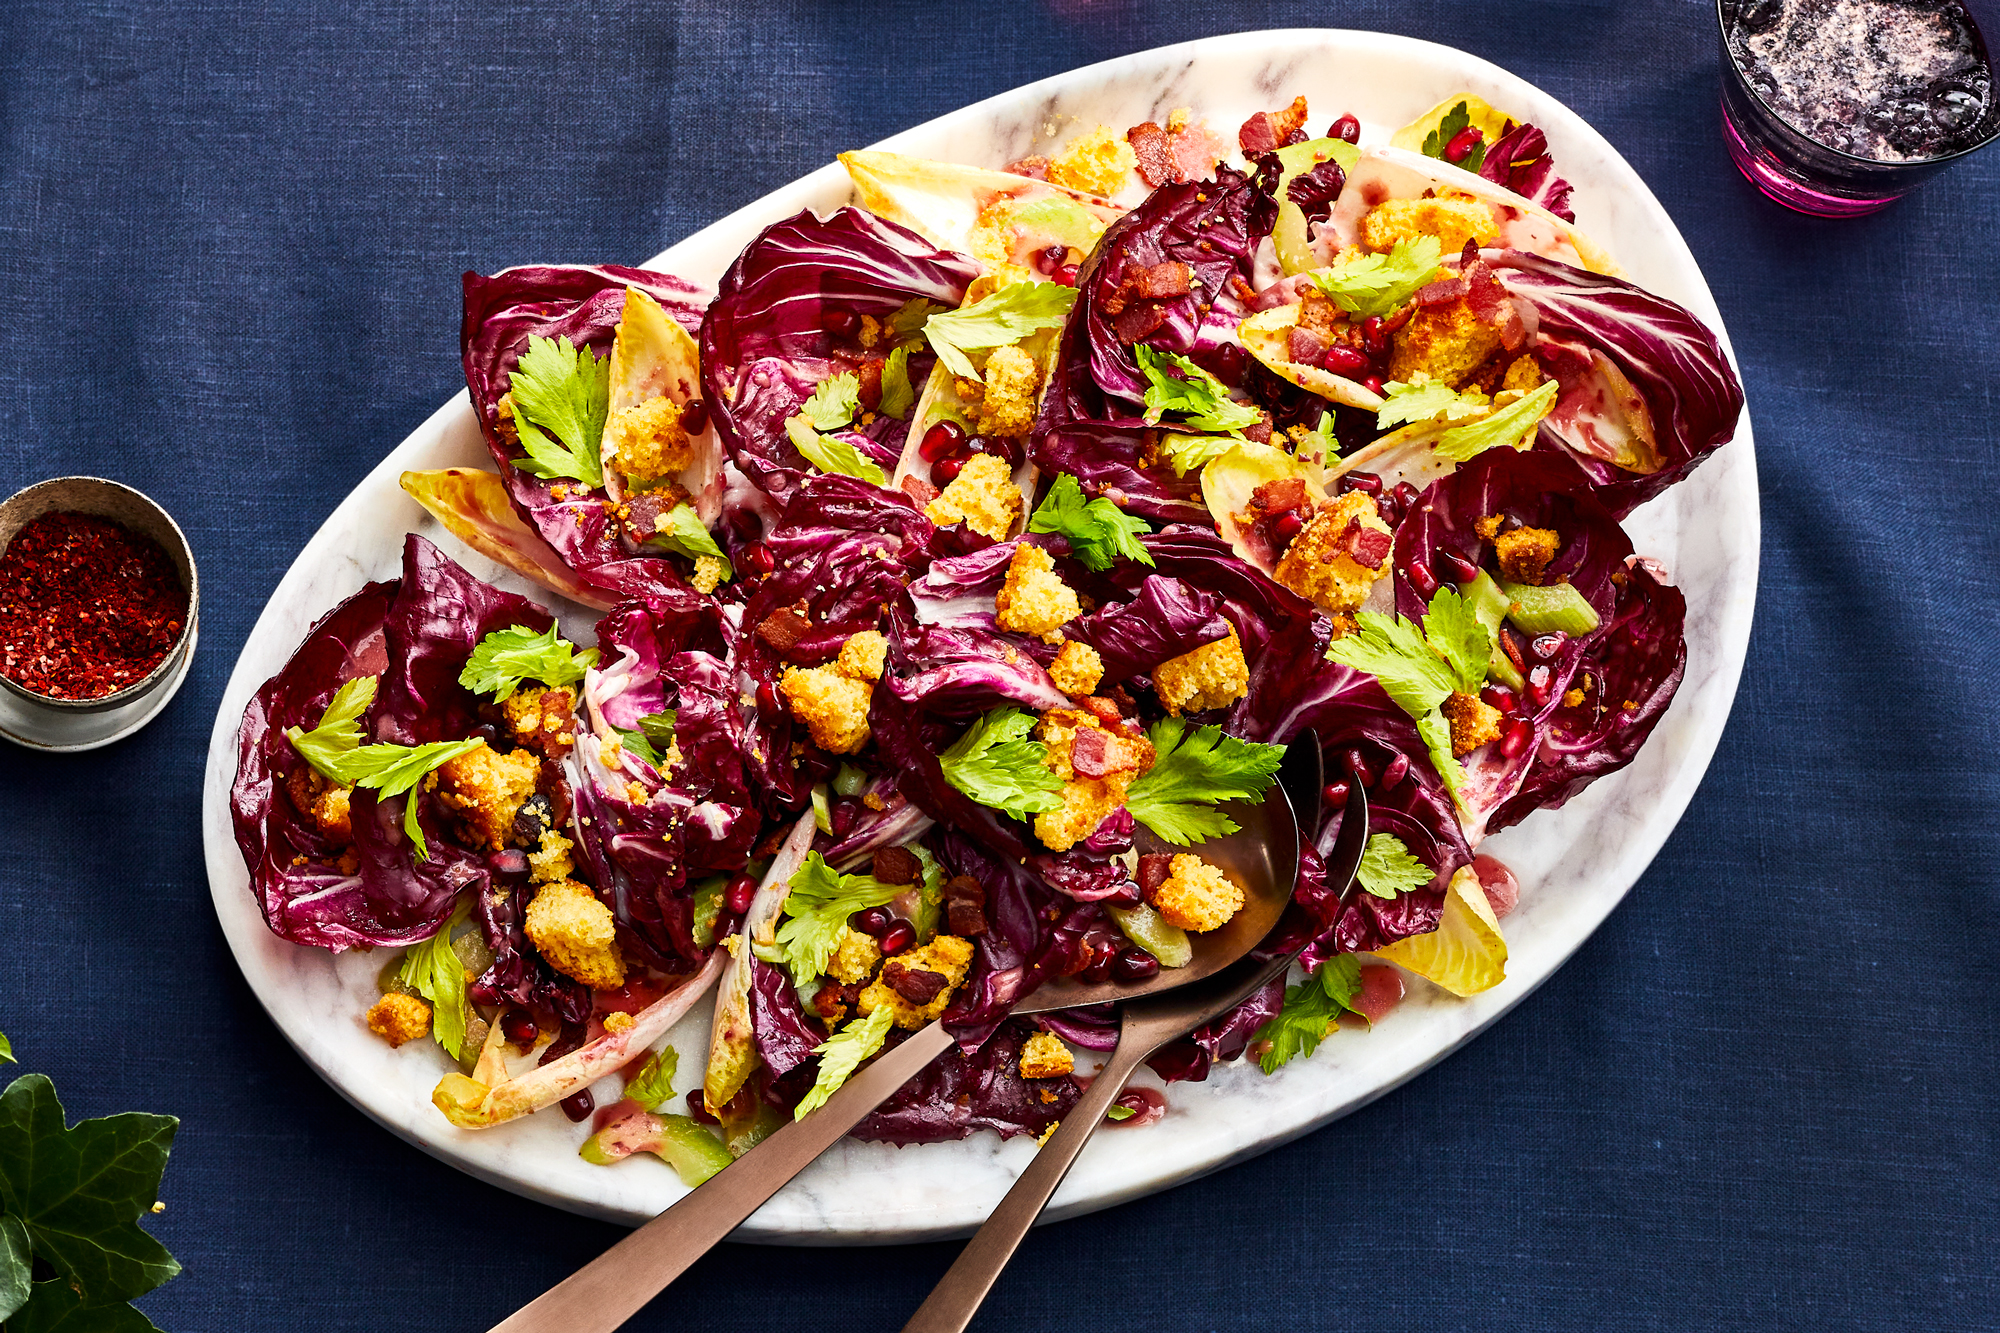 Chicory salad with cranberry sauce vinaigrette